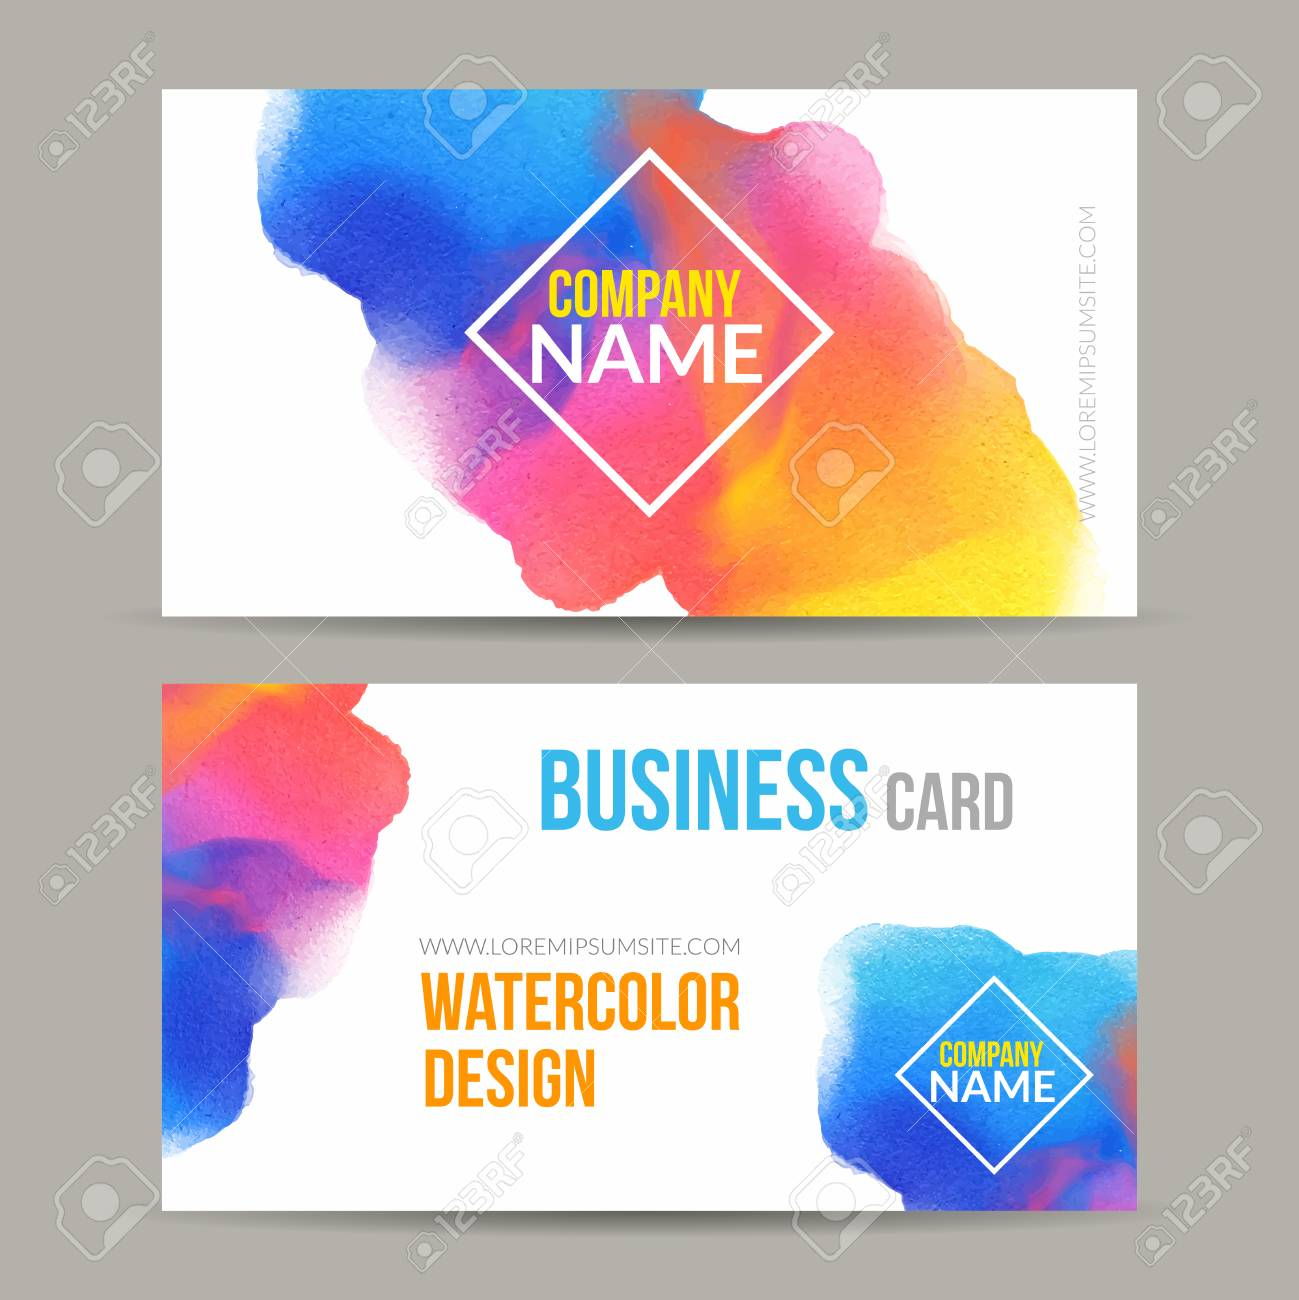 business cards template with watercolor paint abstract background